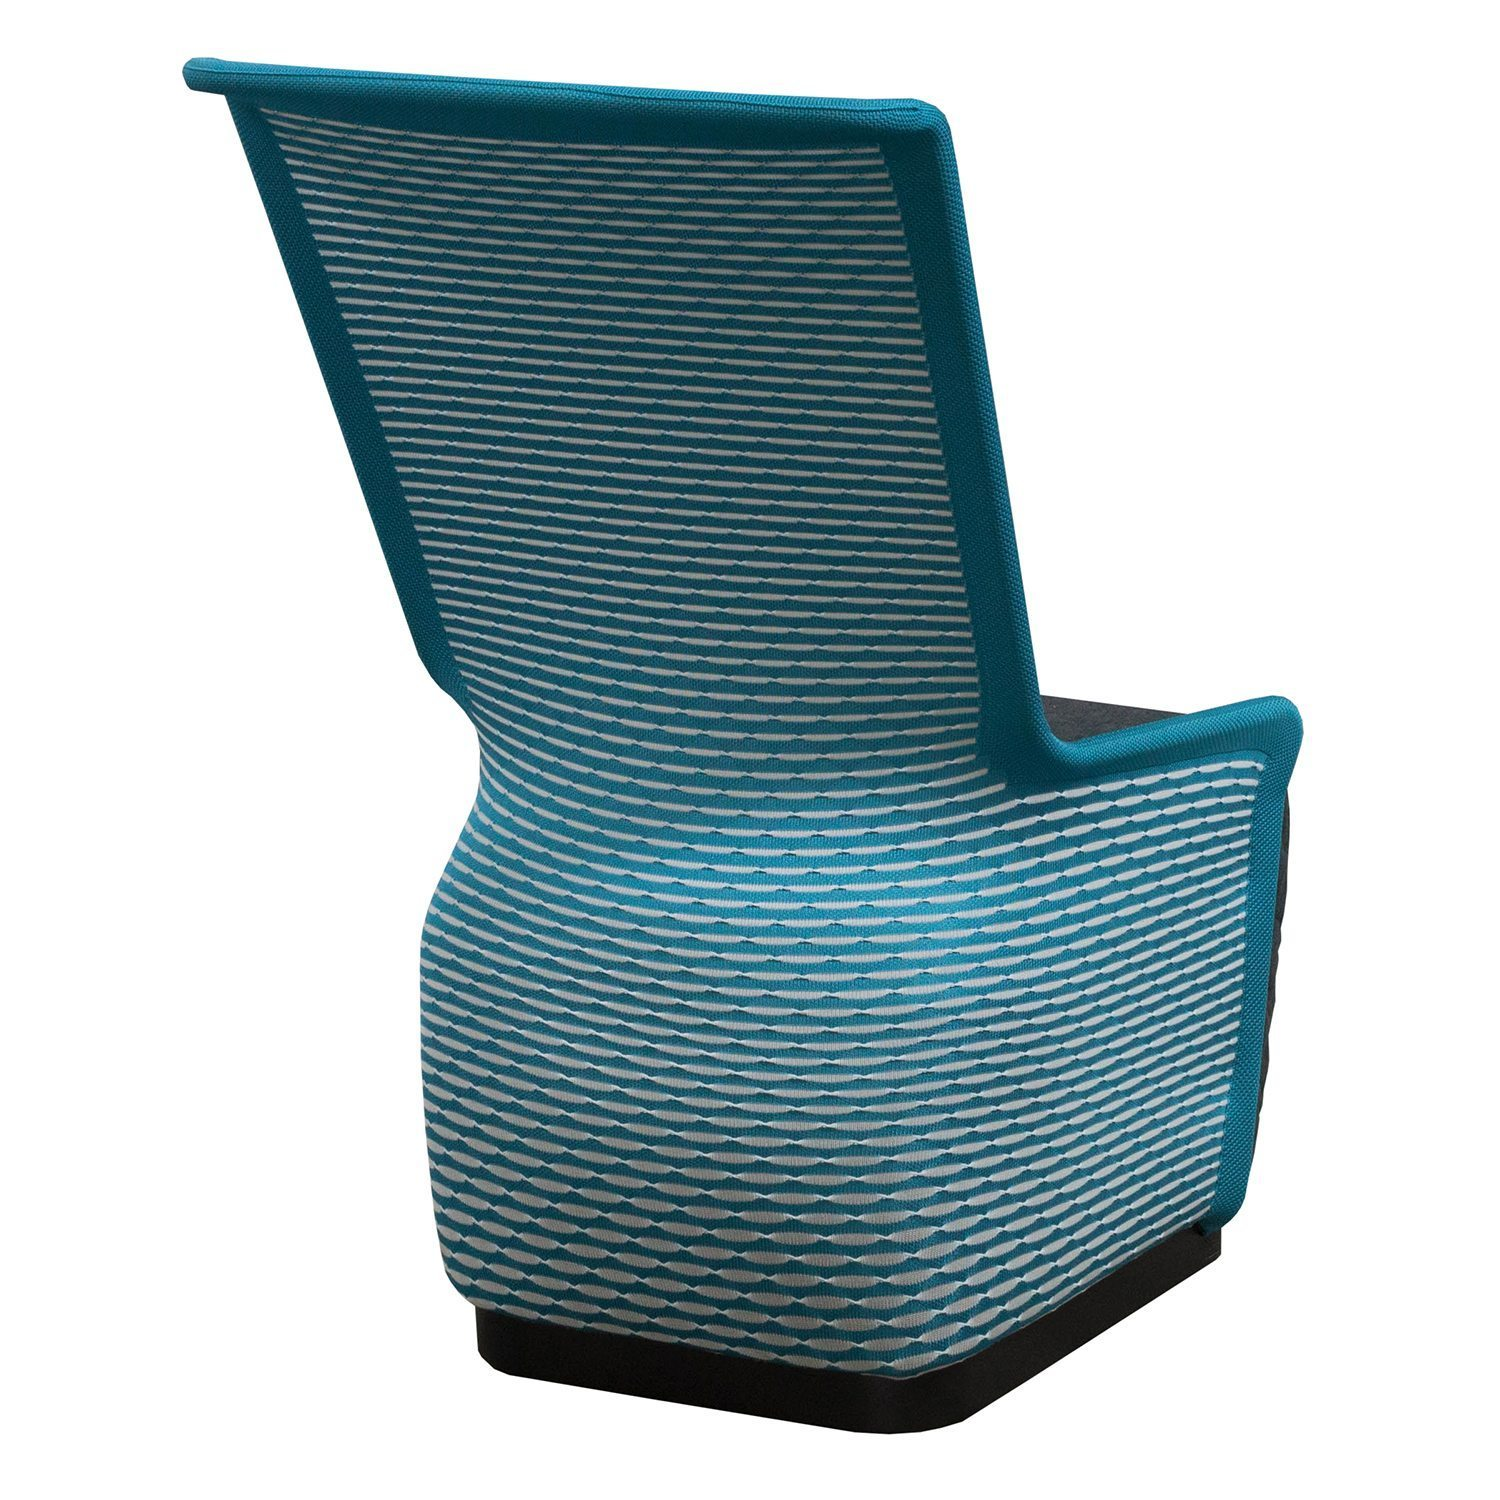 Mesh Lounge Chair Tide Pool By Gosit Modern Mesh Lounge Chair Blue And Gray